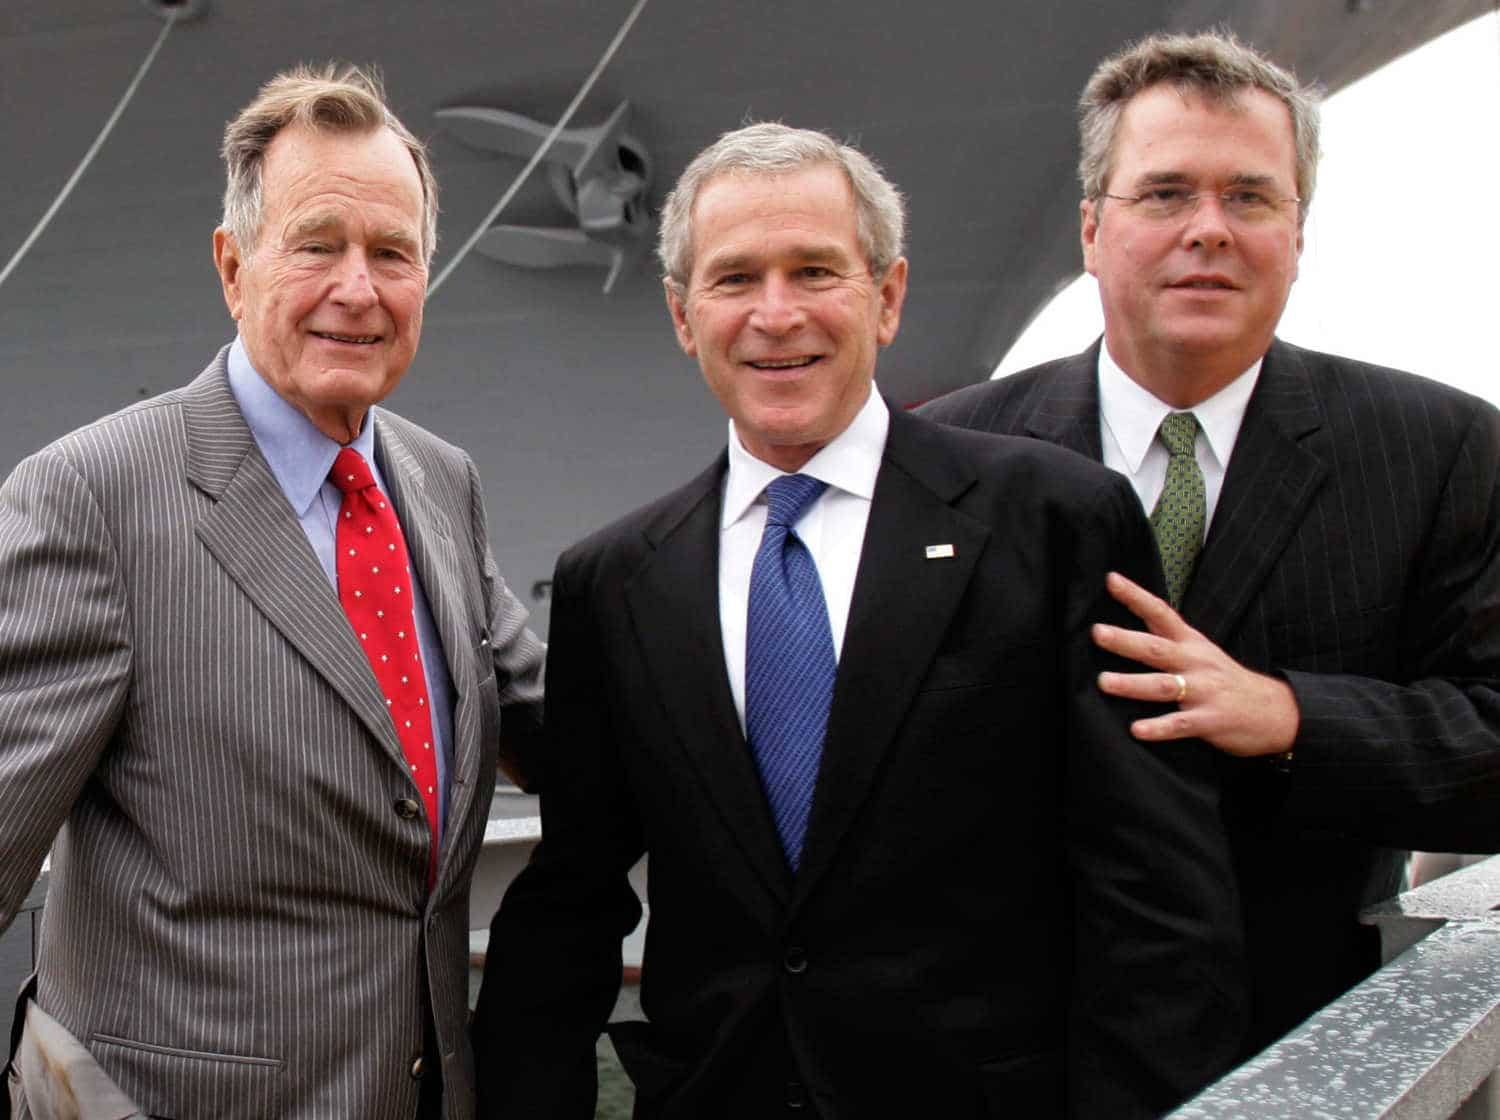 13-george-jeb-bush-republicans.w750.h560.2x